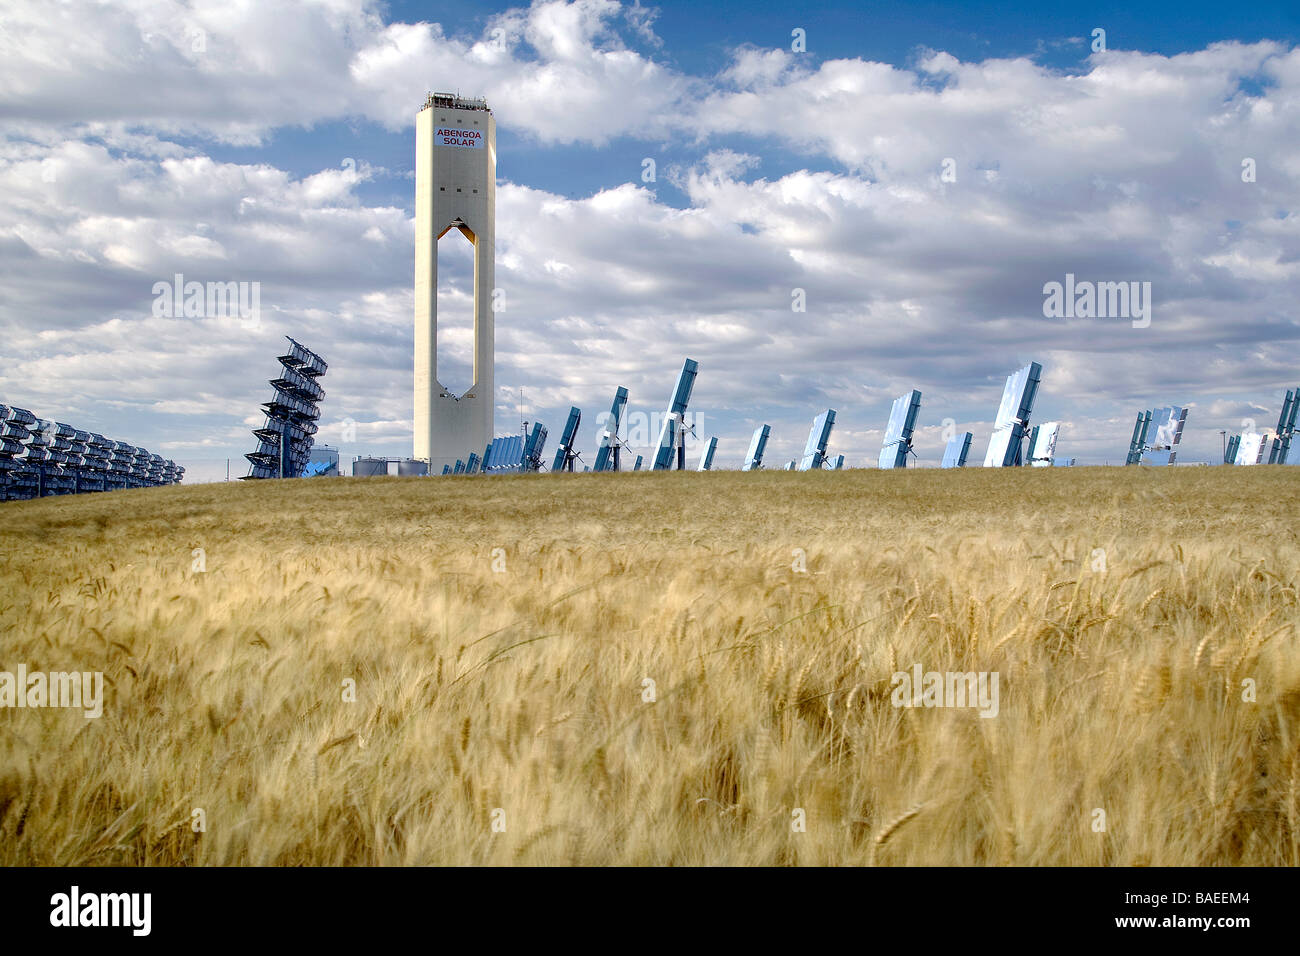 World's first thermoelectric solar tower, Spain - Stock Image